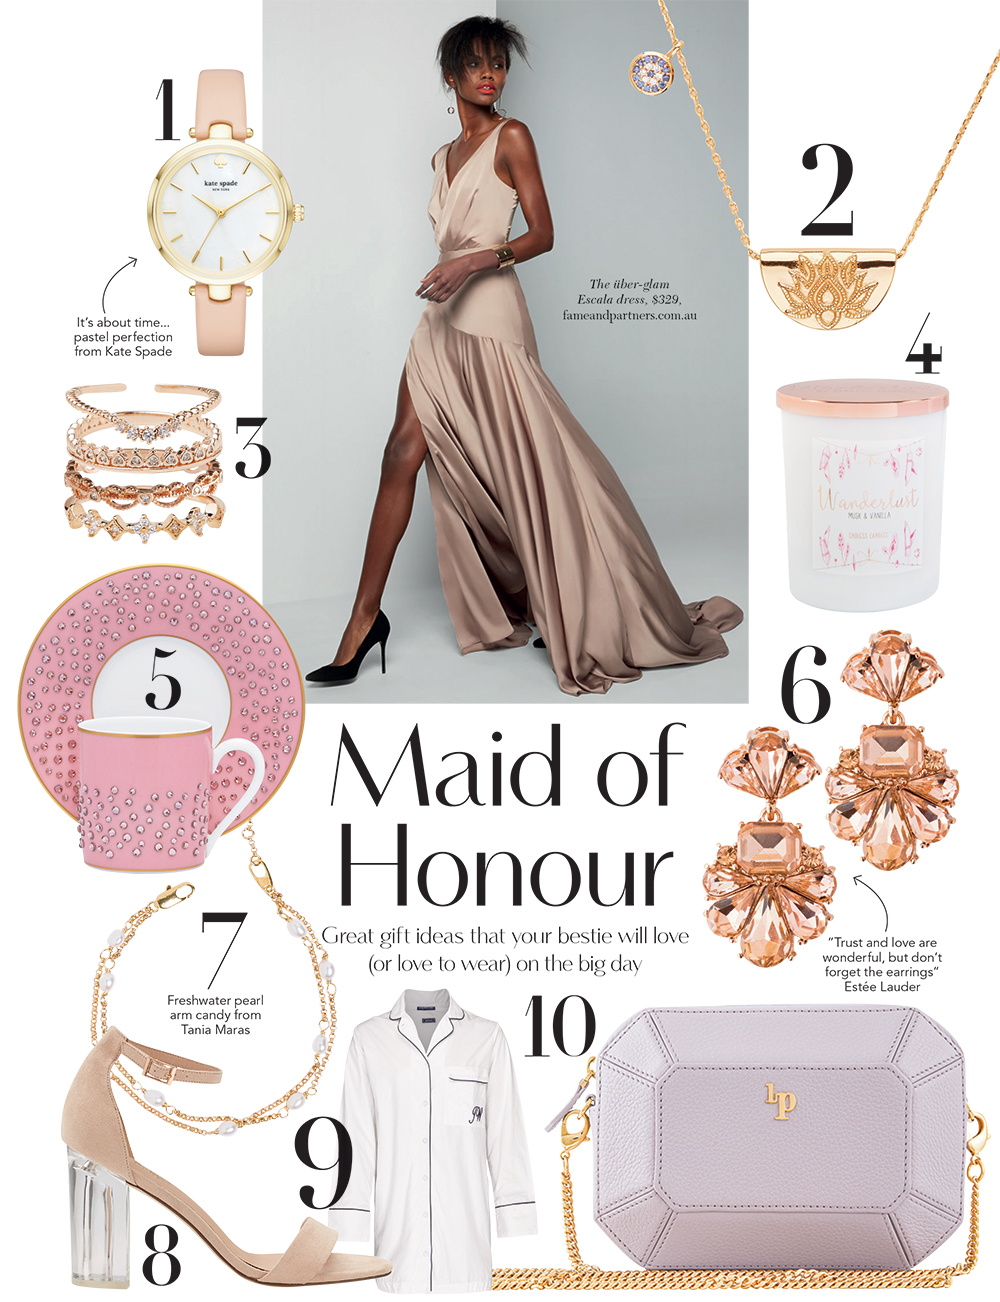 maid of honour gift ideas